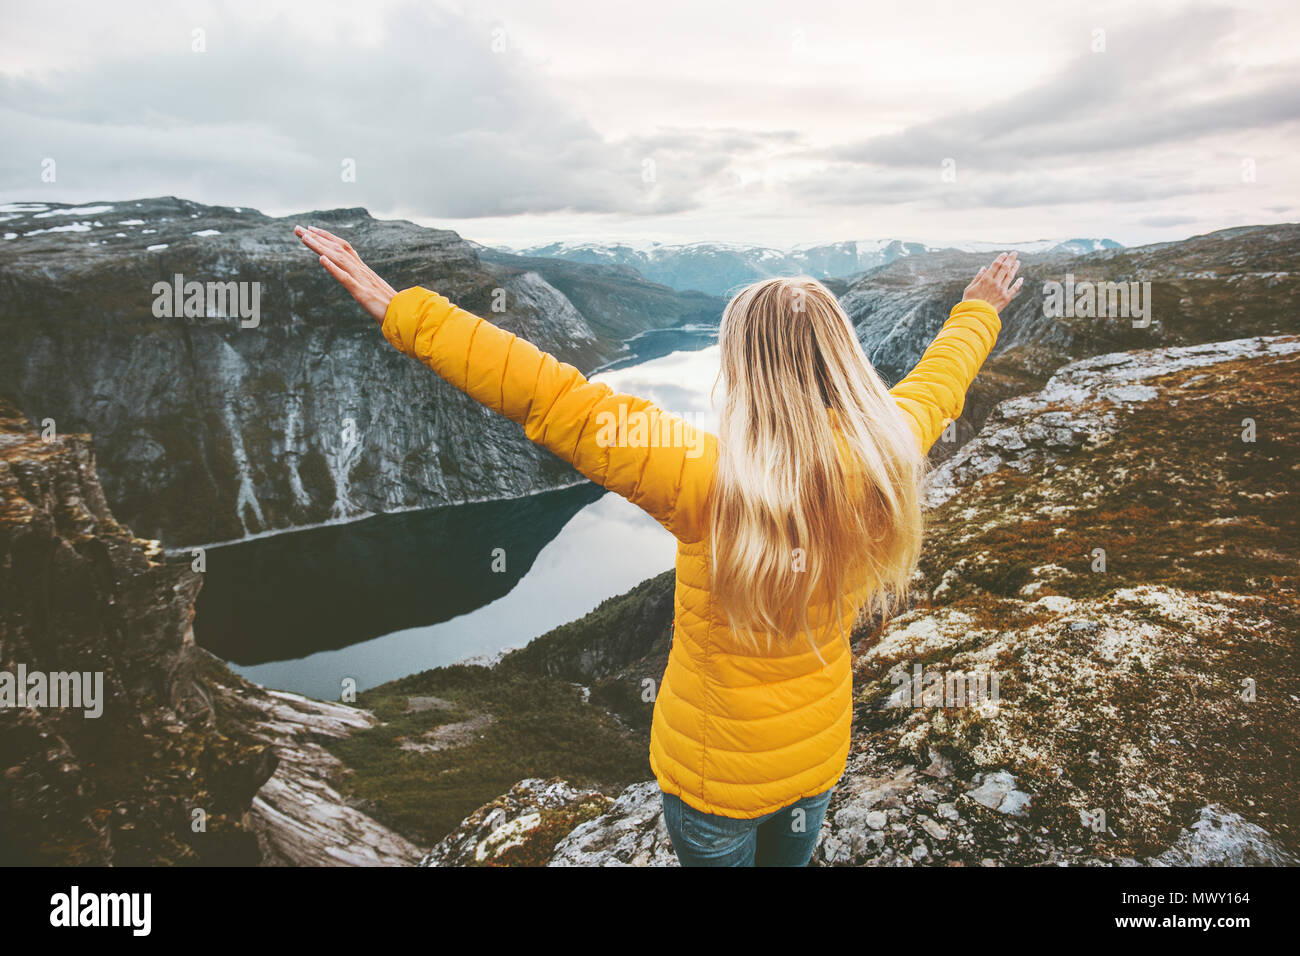 Journey in mountains Woman traveling happy raised hands enjoying landscape adventure lifestyle journey vacations  success harmony with nature emotions - Stock Image